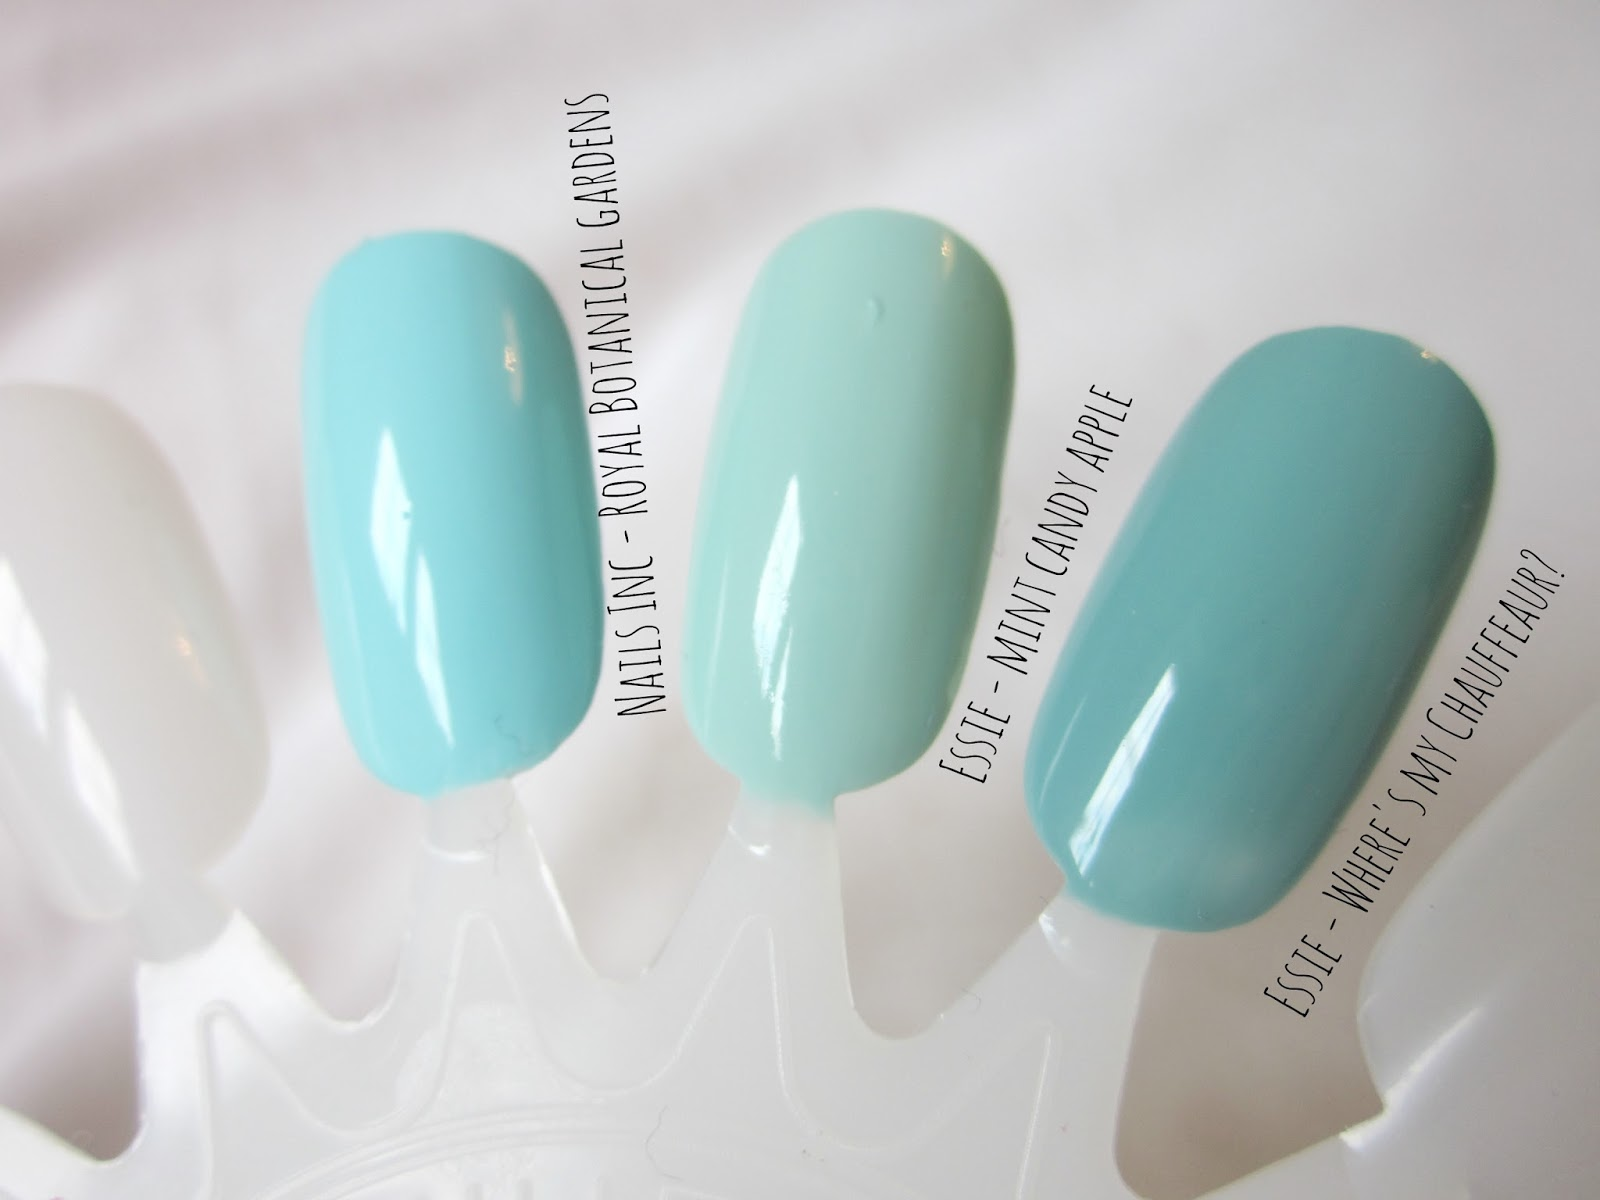 nails inc royal botanical gardens essie mint candy apple where's my chauffeur swatches